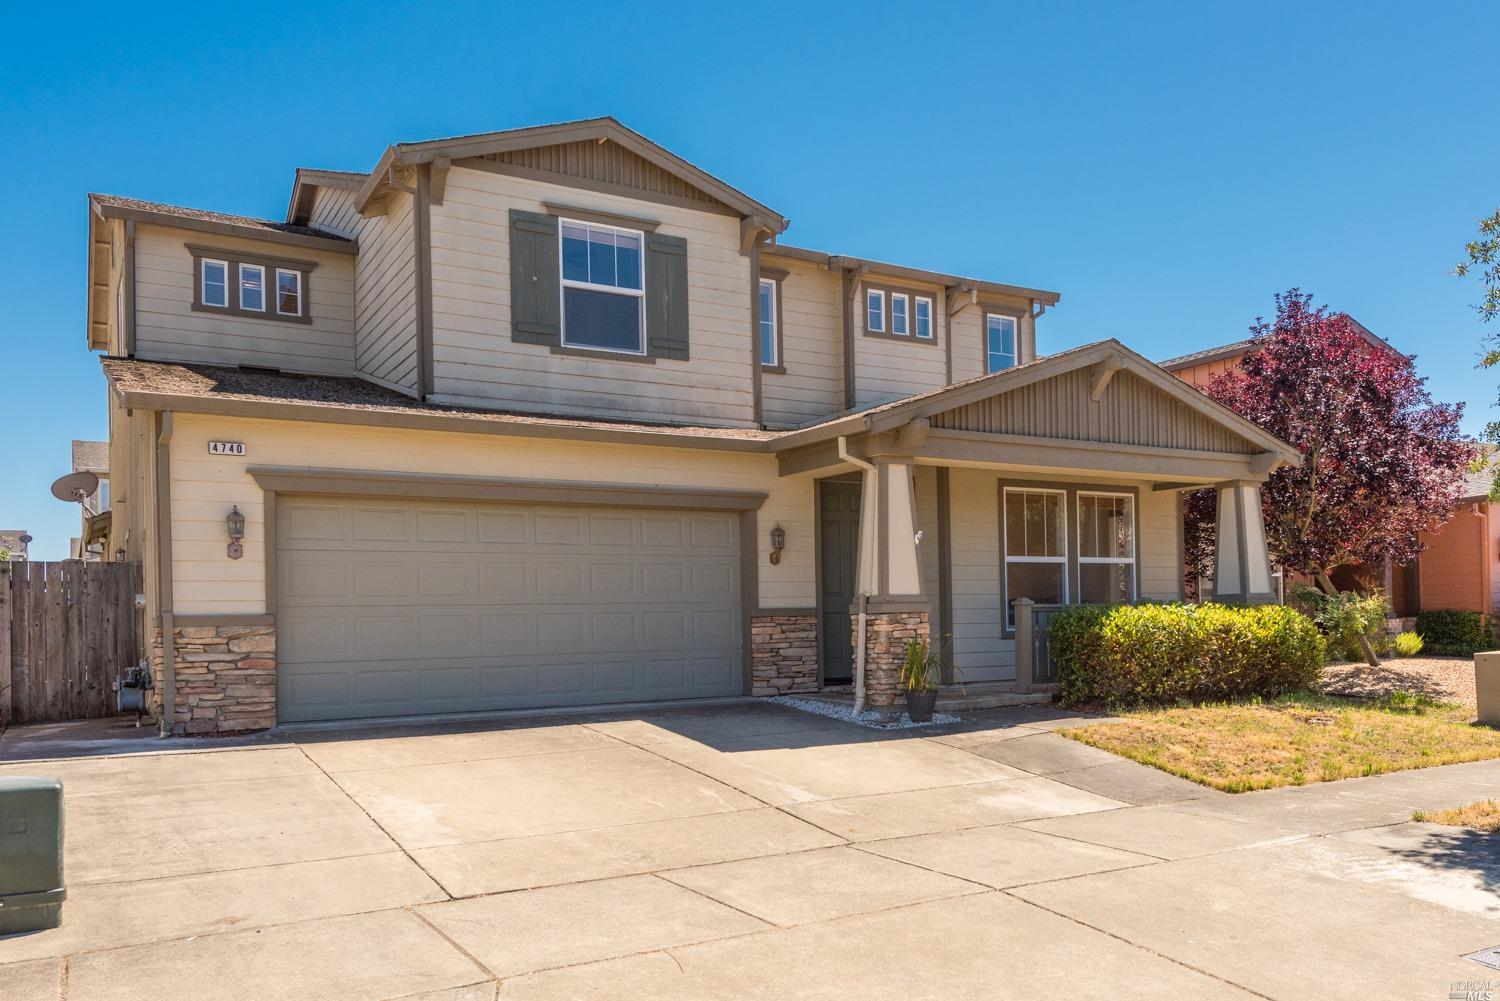 4740 Orville Avenue Santa Rosa, California 95407, 5 Bedrooms Bedrooms, ,4 BathroomsBathrooms,Residential,For Sale,4740 Orville,21916110